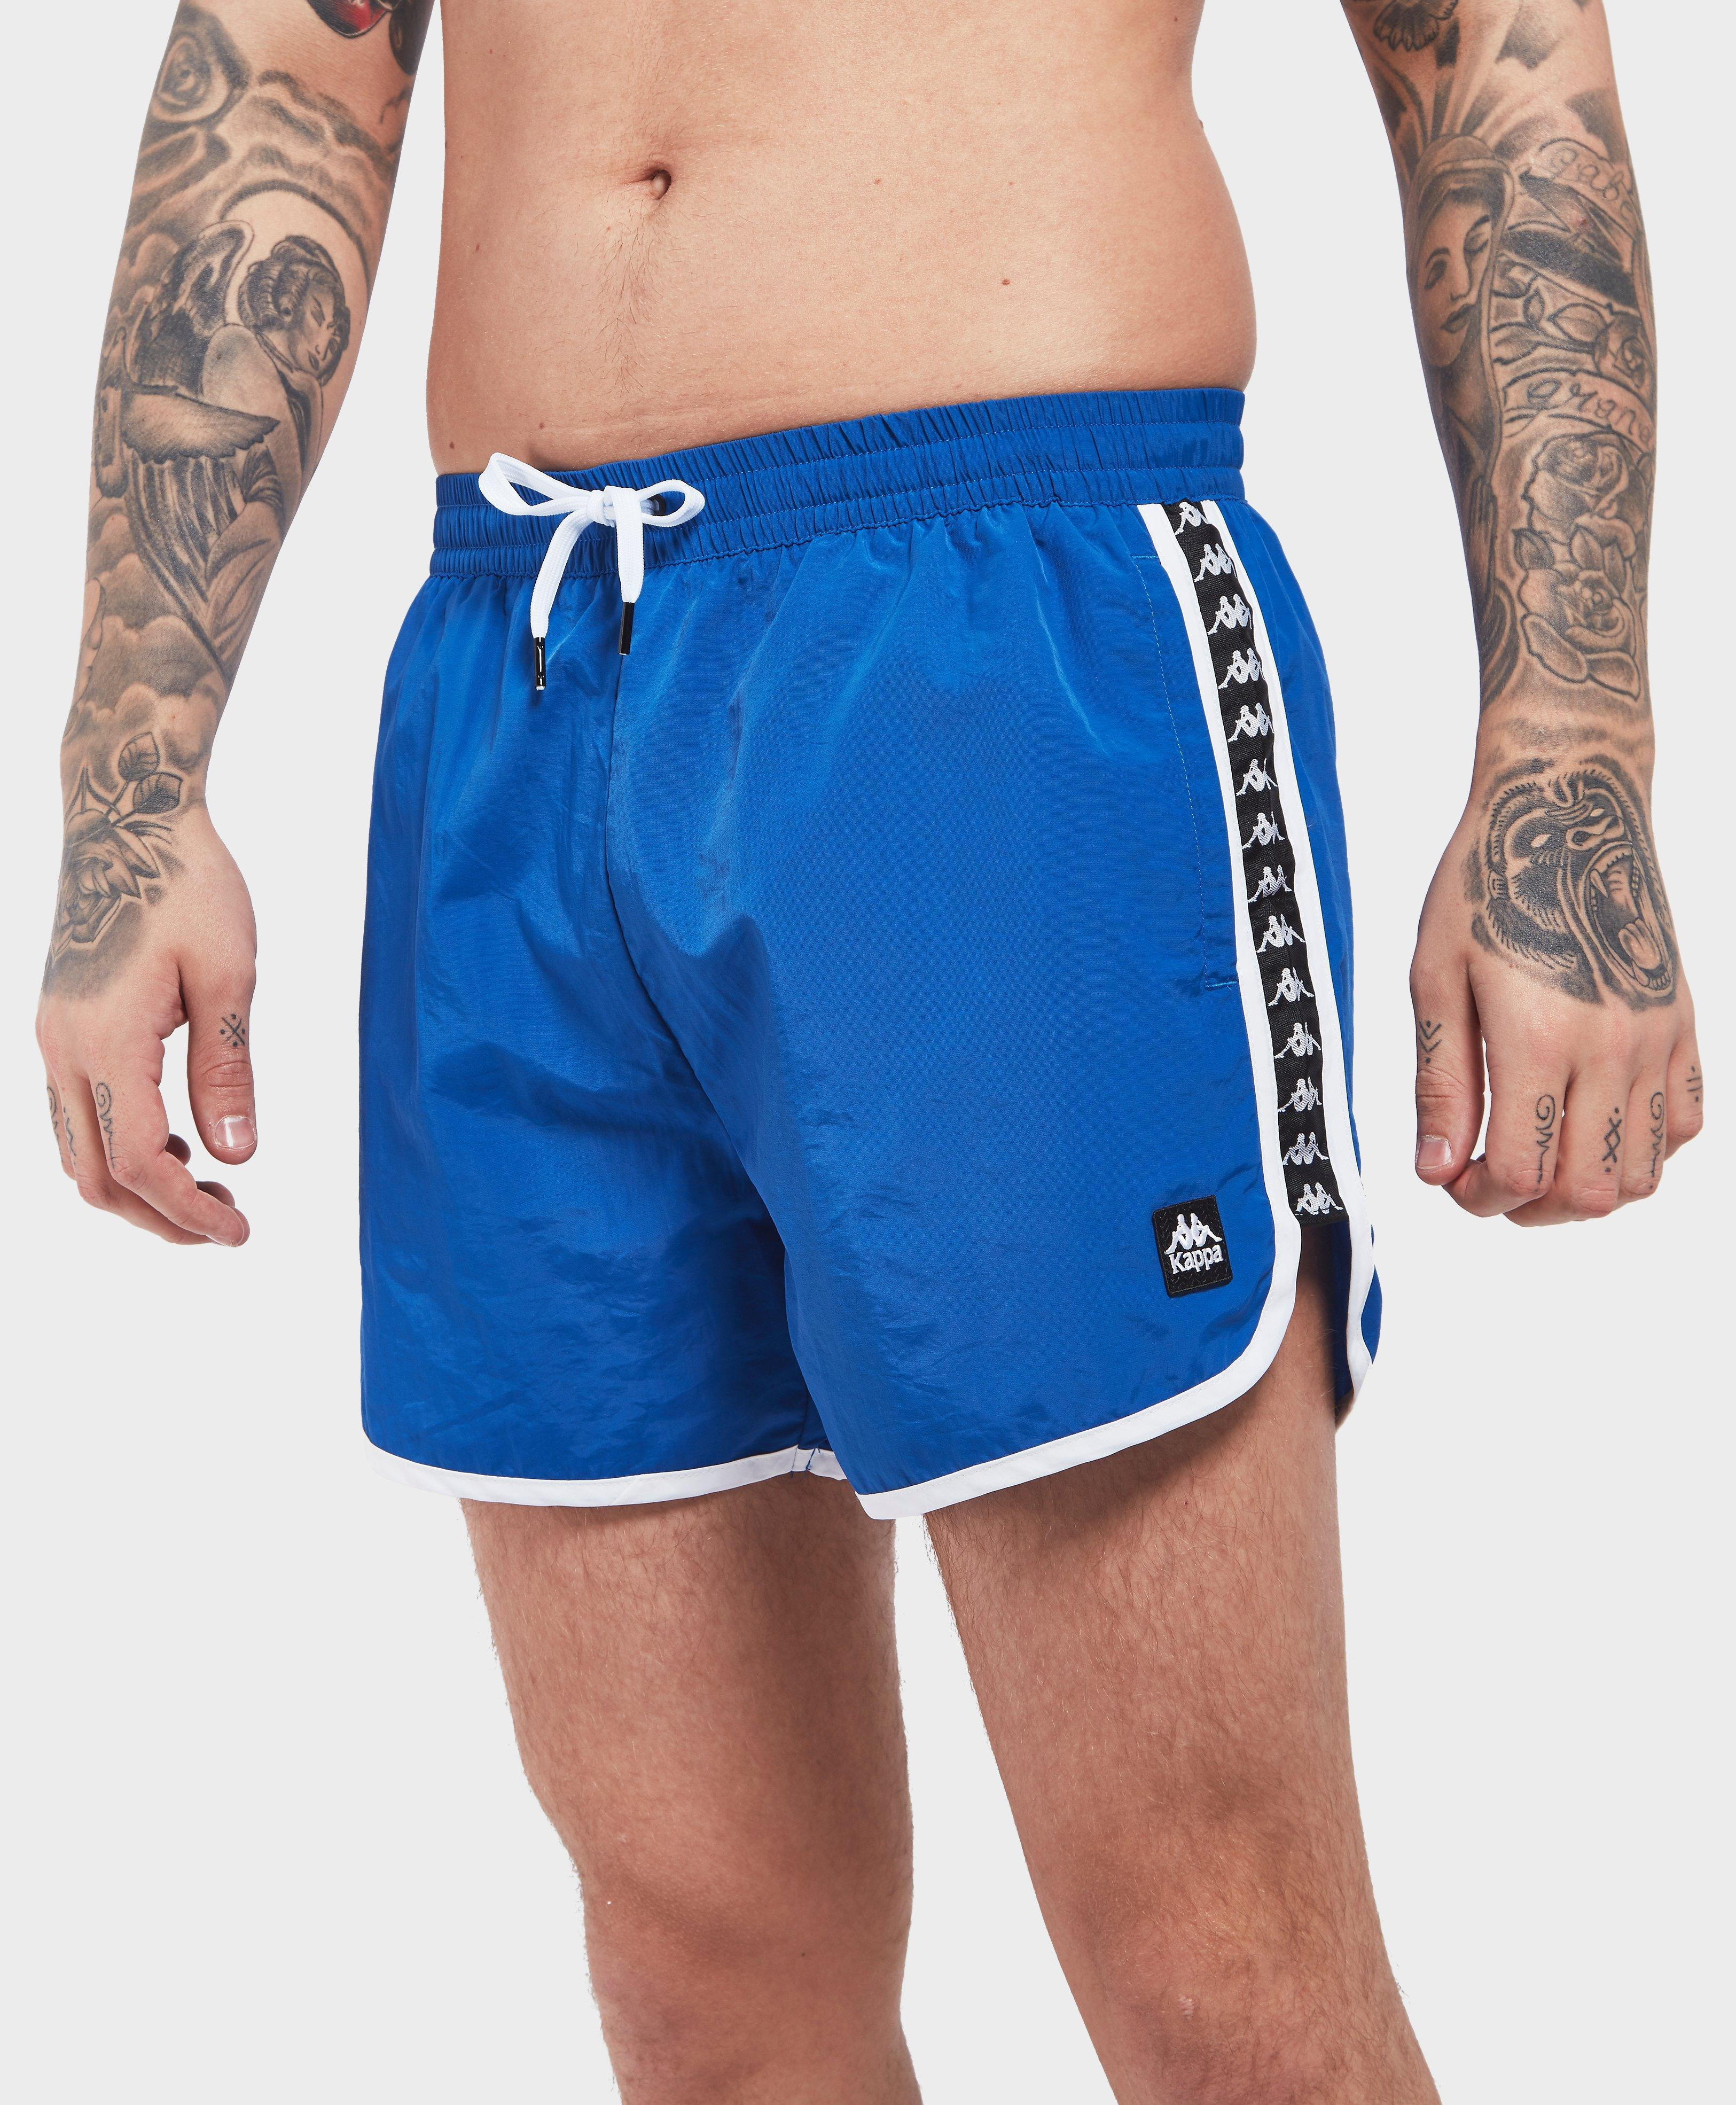 adc013e20f980 Kappa Agius Swim Shorts in Blue for Men - Lyst